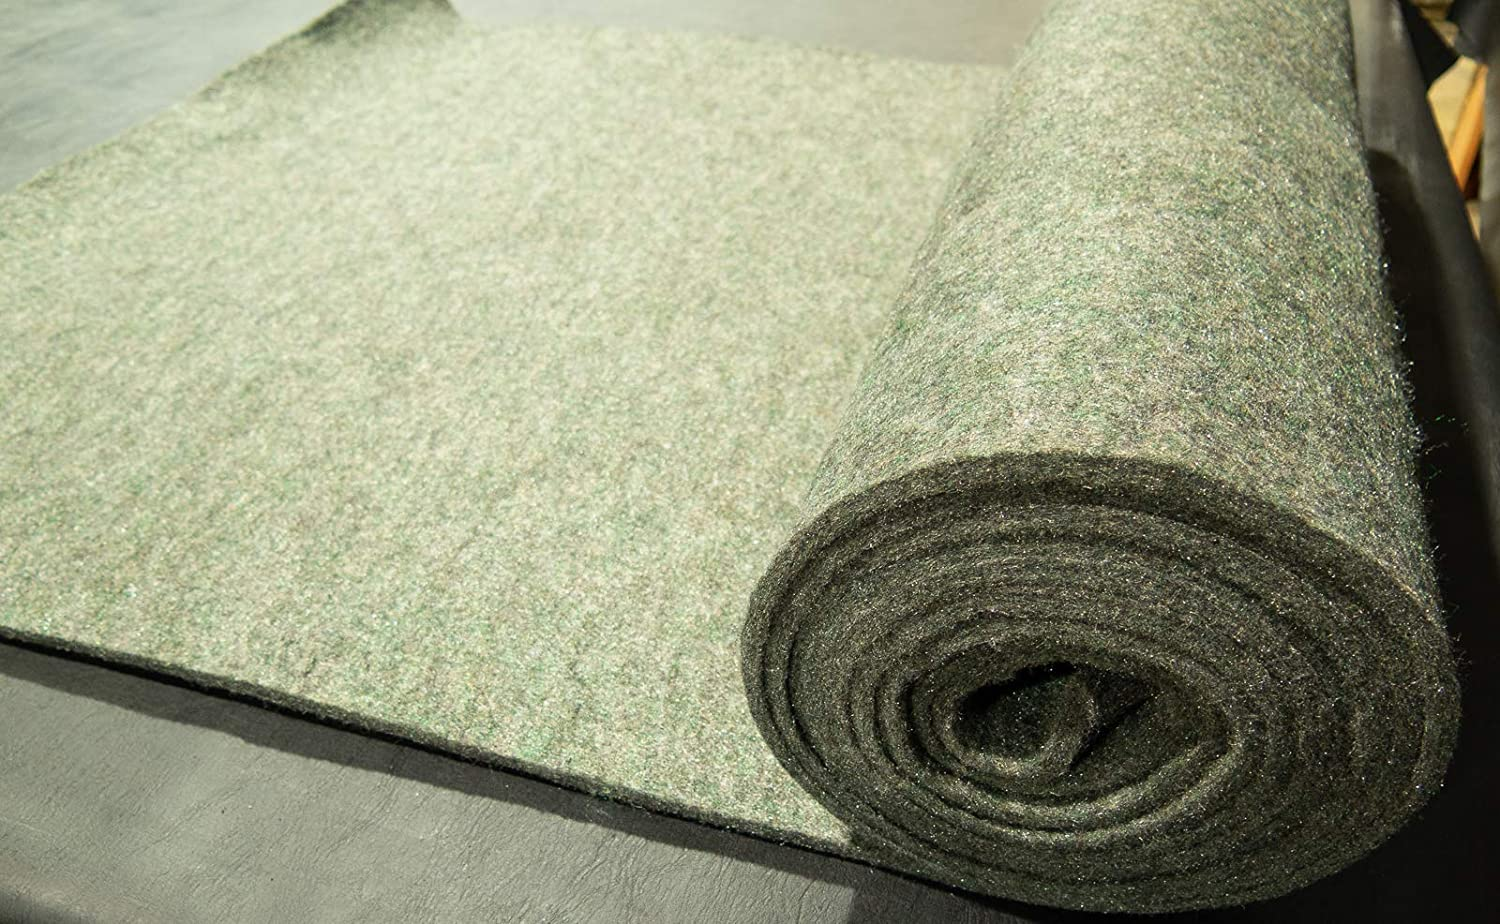 Bry-Tech Furniture1 Automotive Jute Carpet Padding 40 oz 36 Wide by 25 Yards goes Under Carpet in Cars and Trucks